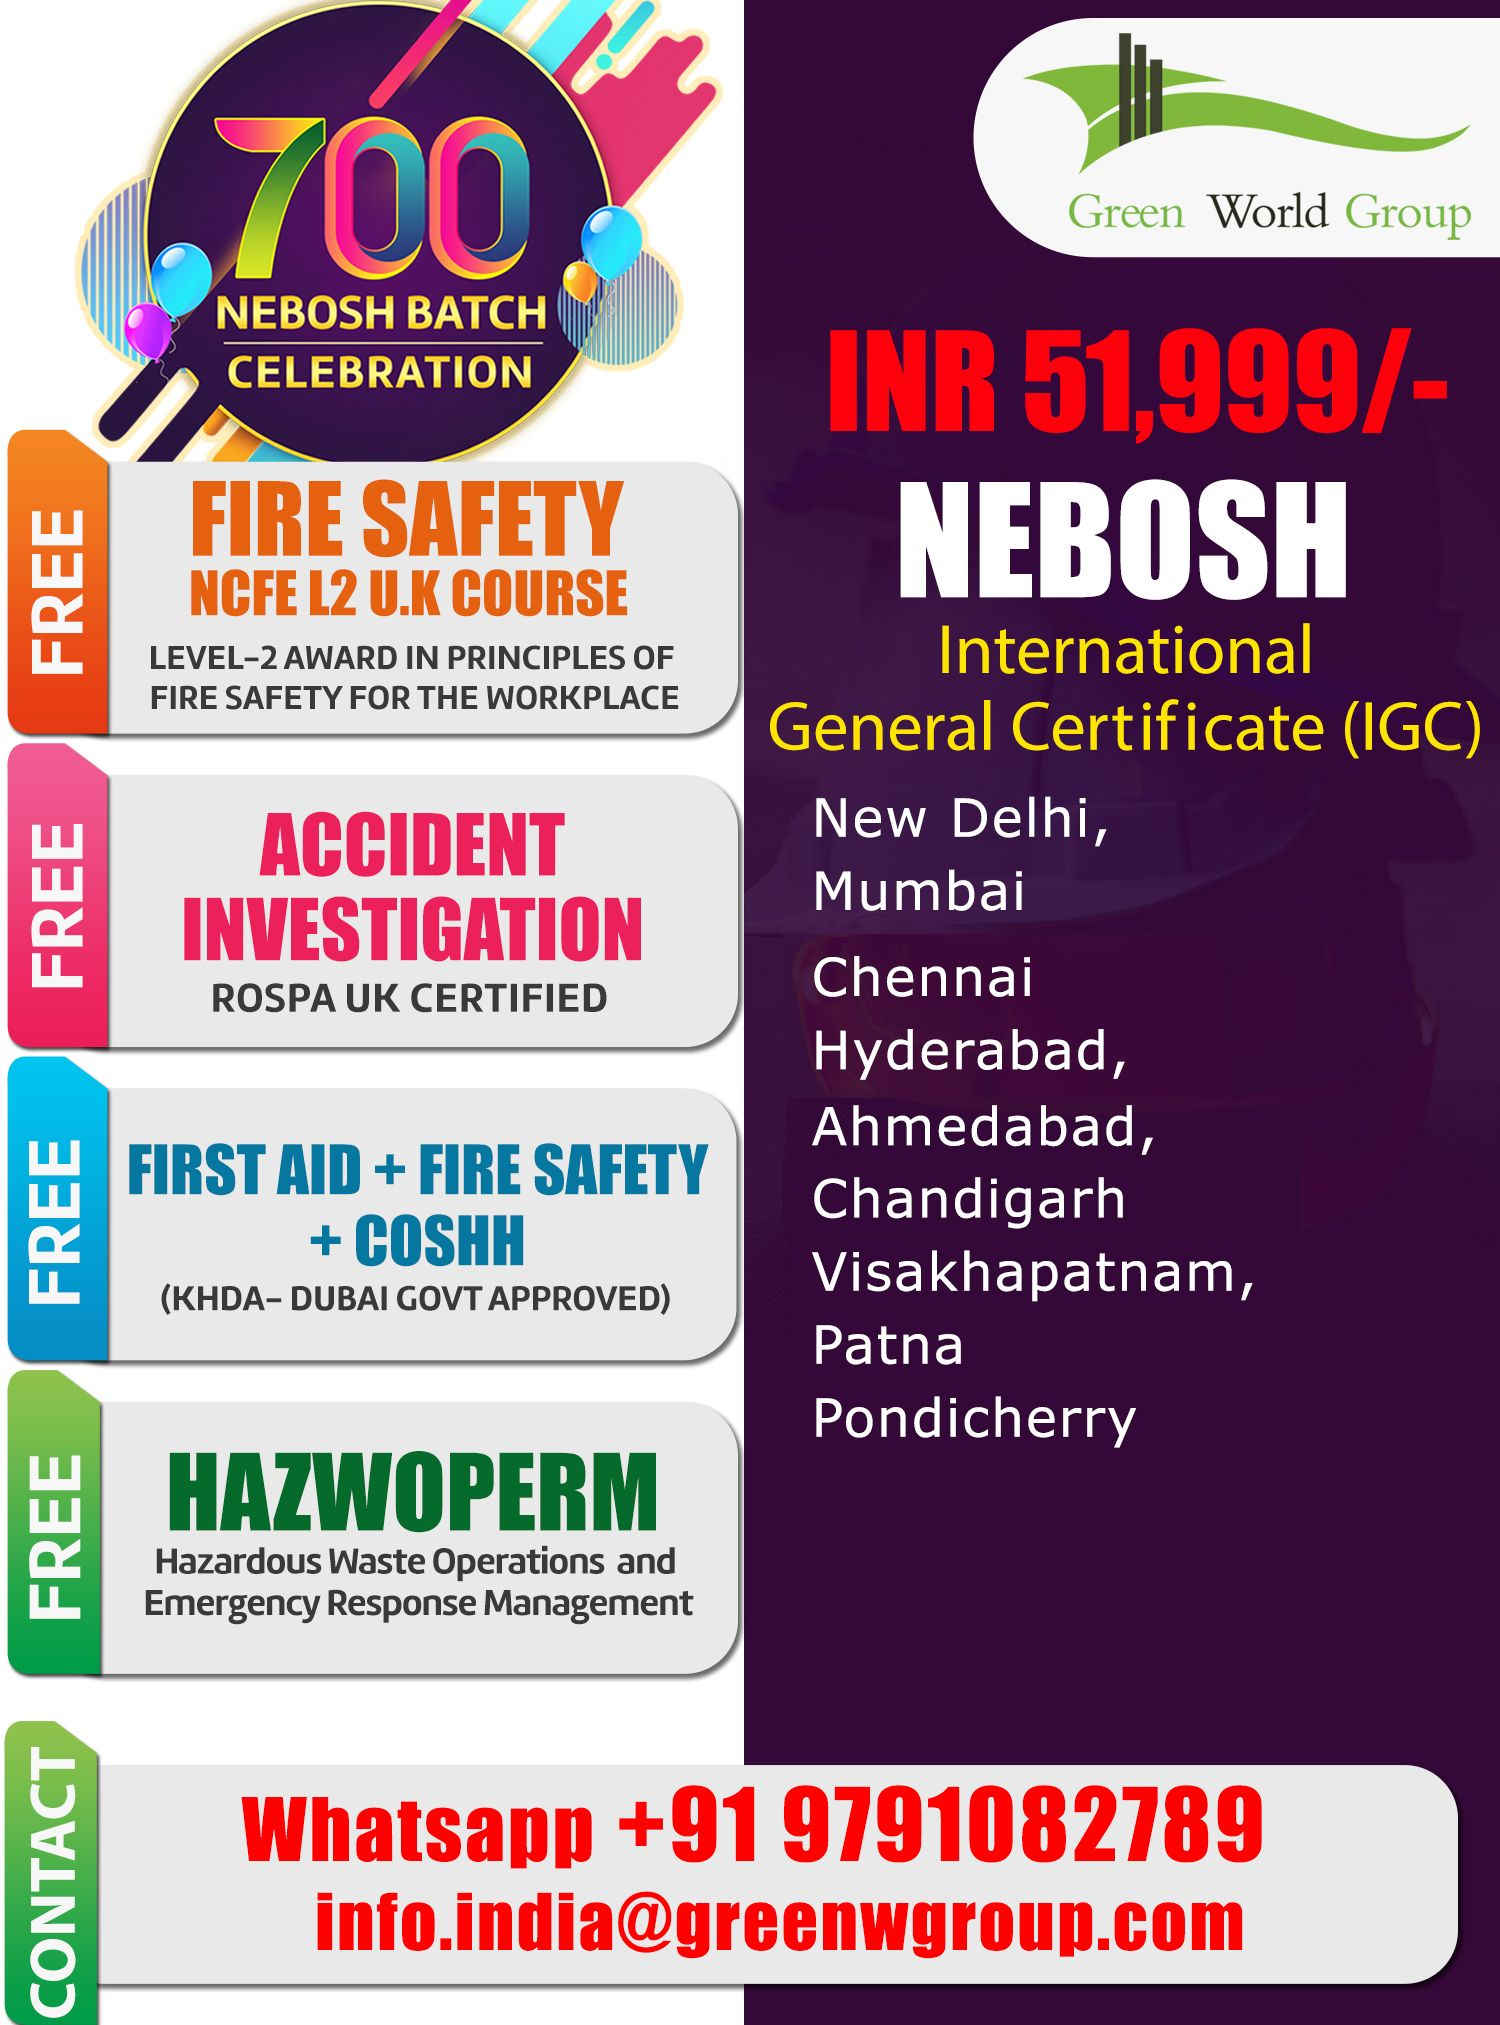 GWG Serves NEBOSH IGC Training Course In Chennai And Also Provide Safety Courses Such Us